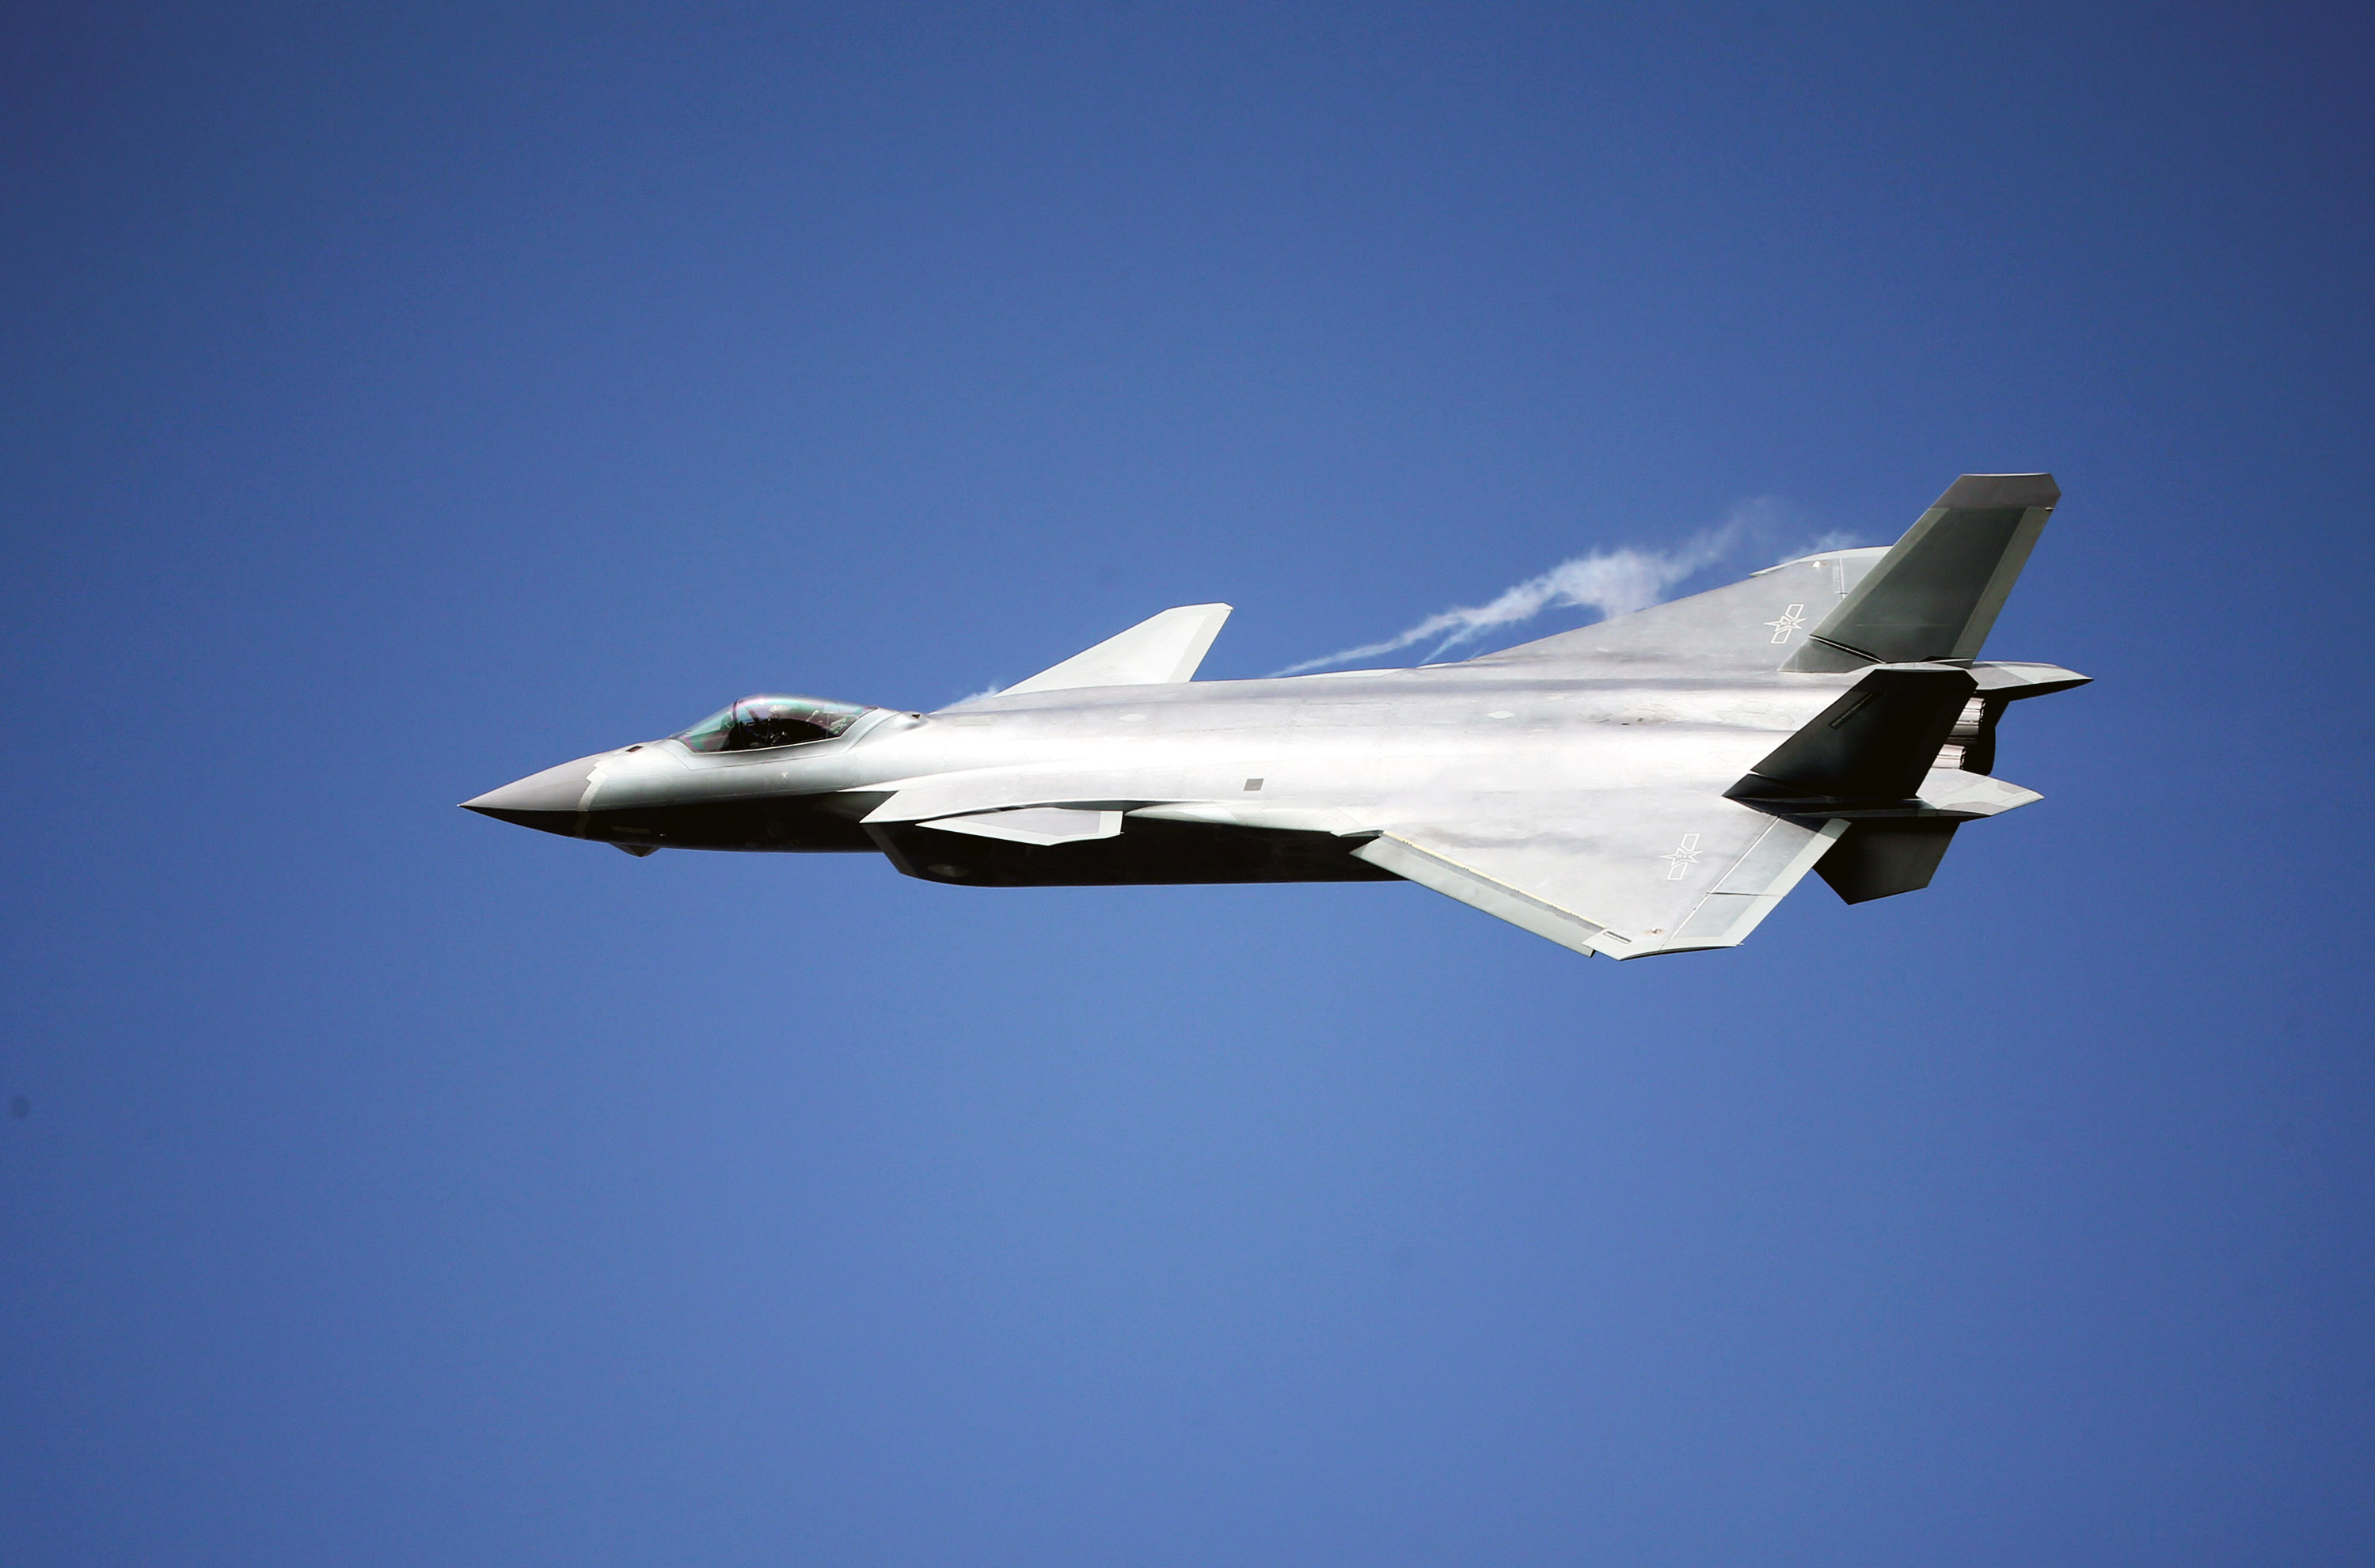 Why China's J-20 Is No Match for the F-22 of F-35 | The ...